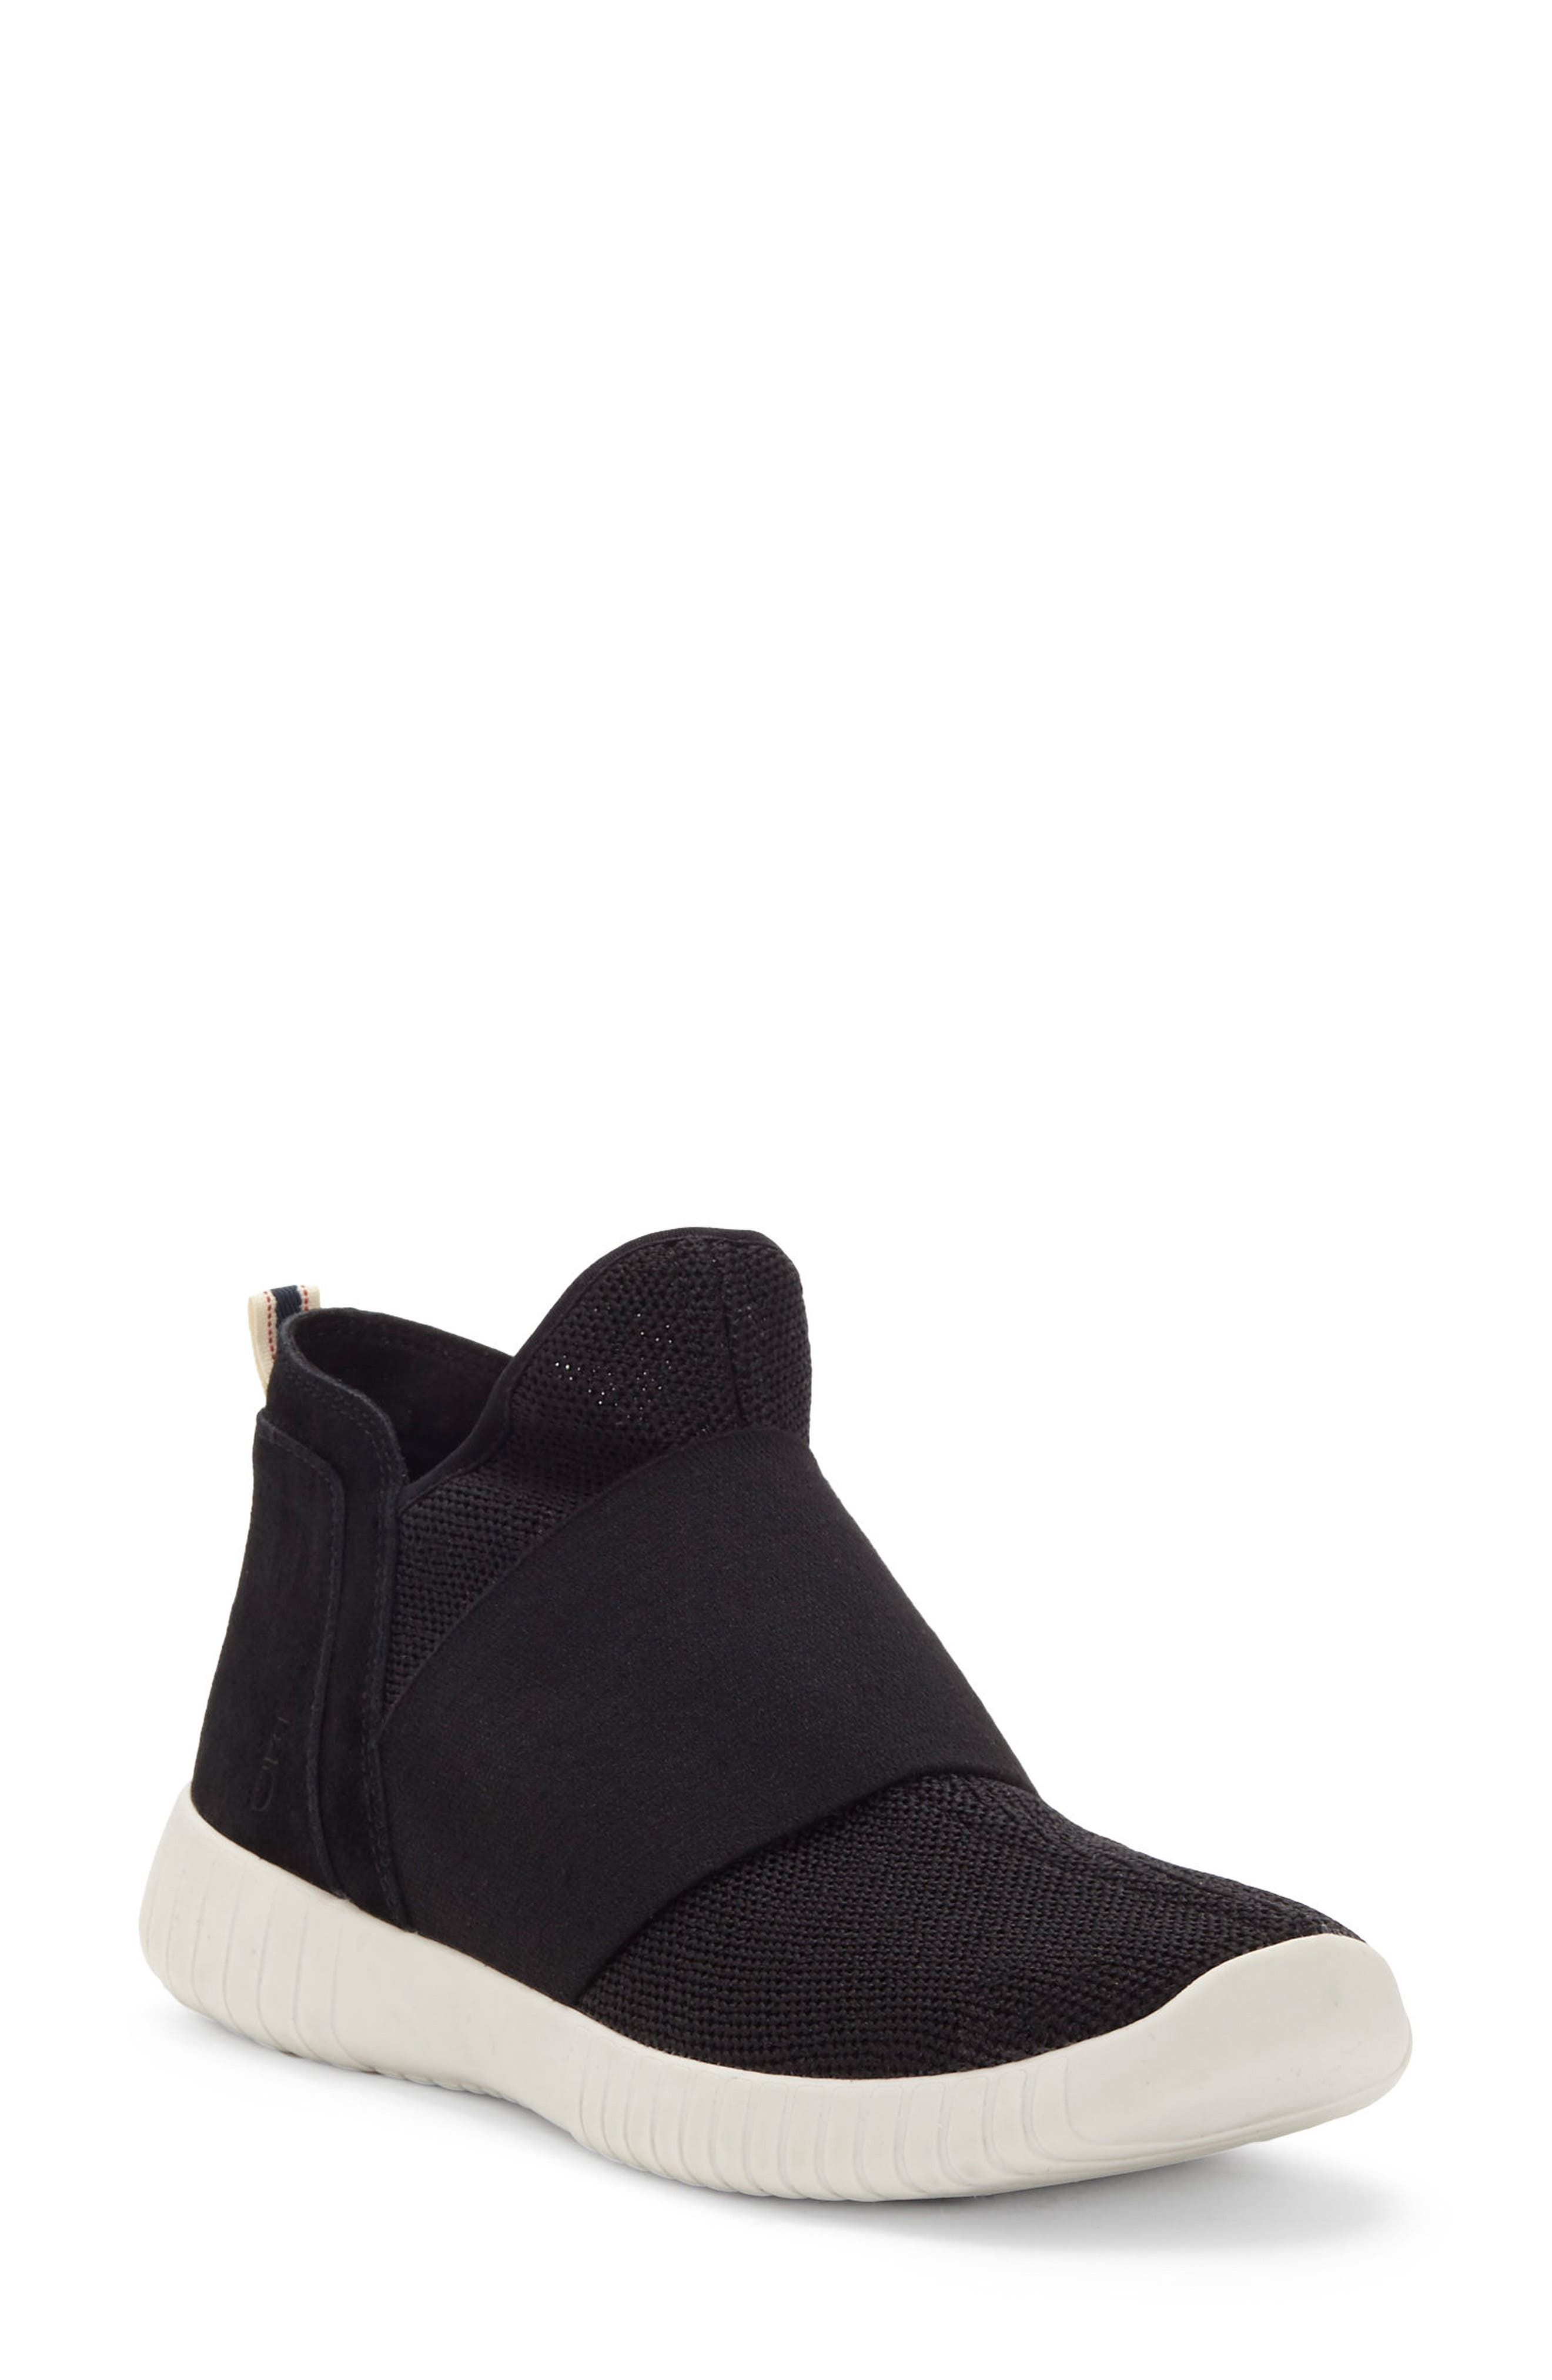 ED Ellen DeGeneres Hachiro High Top Sneaker (Women)